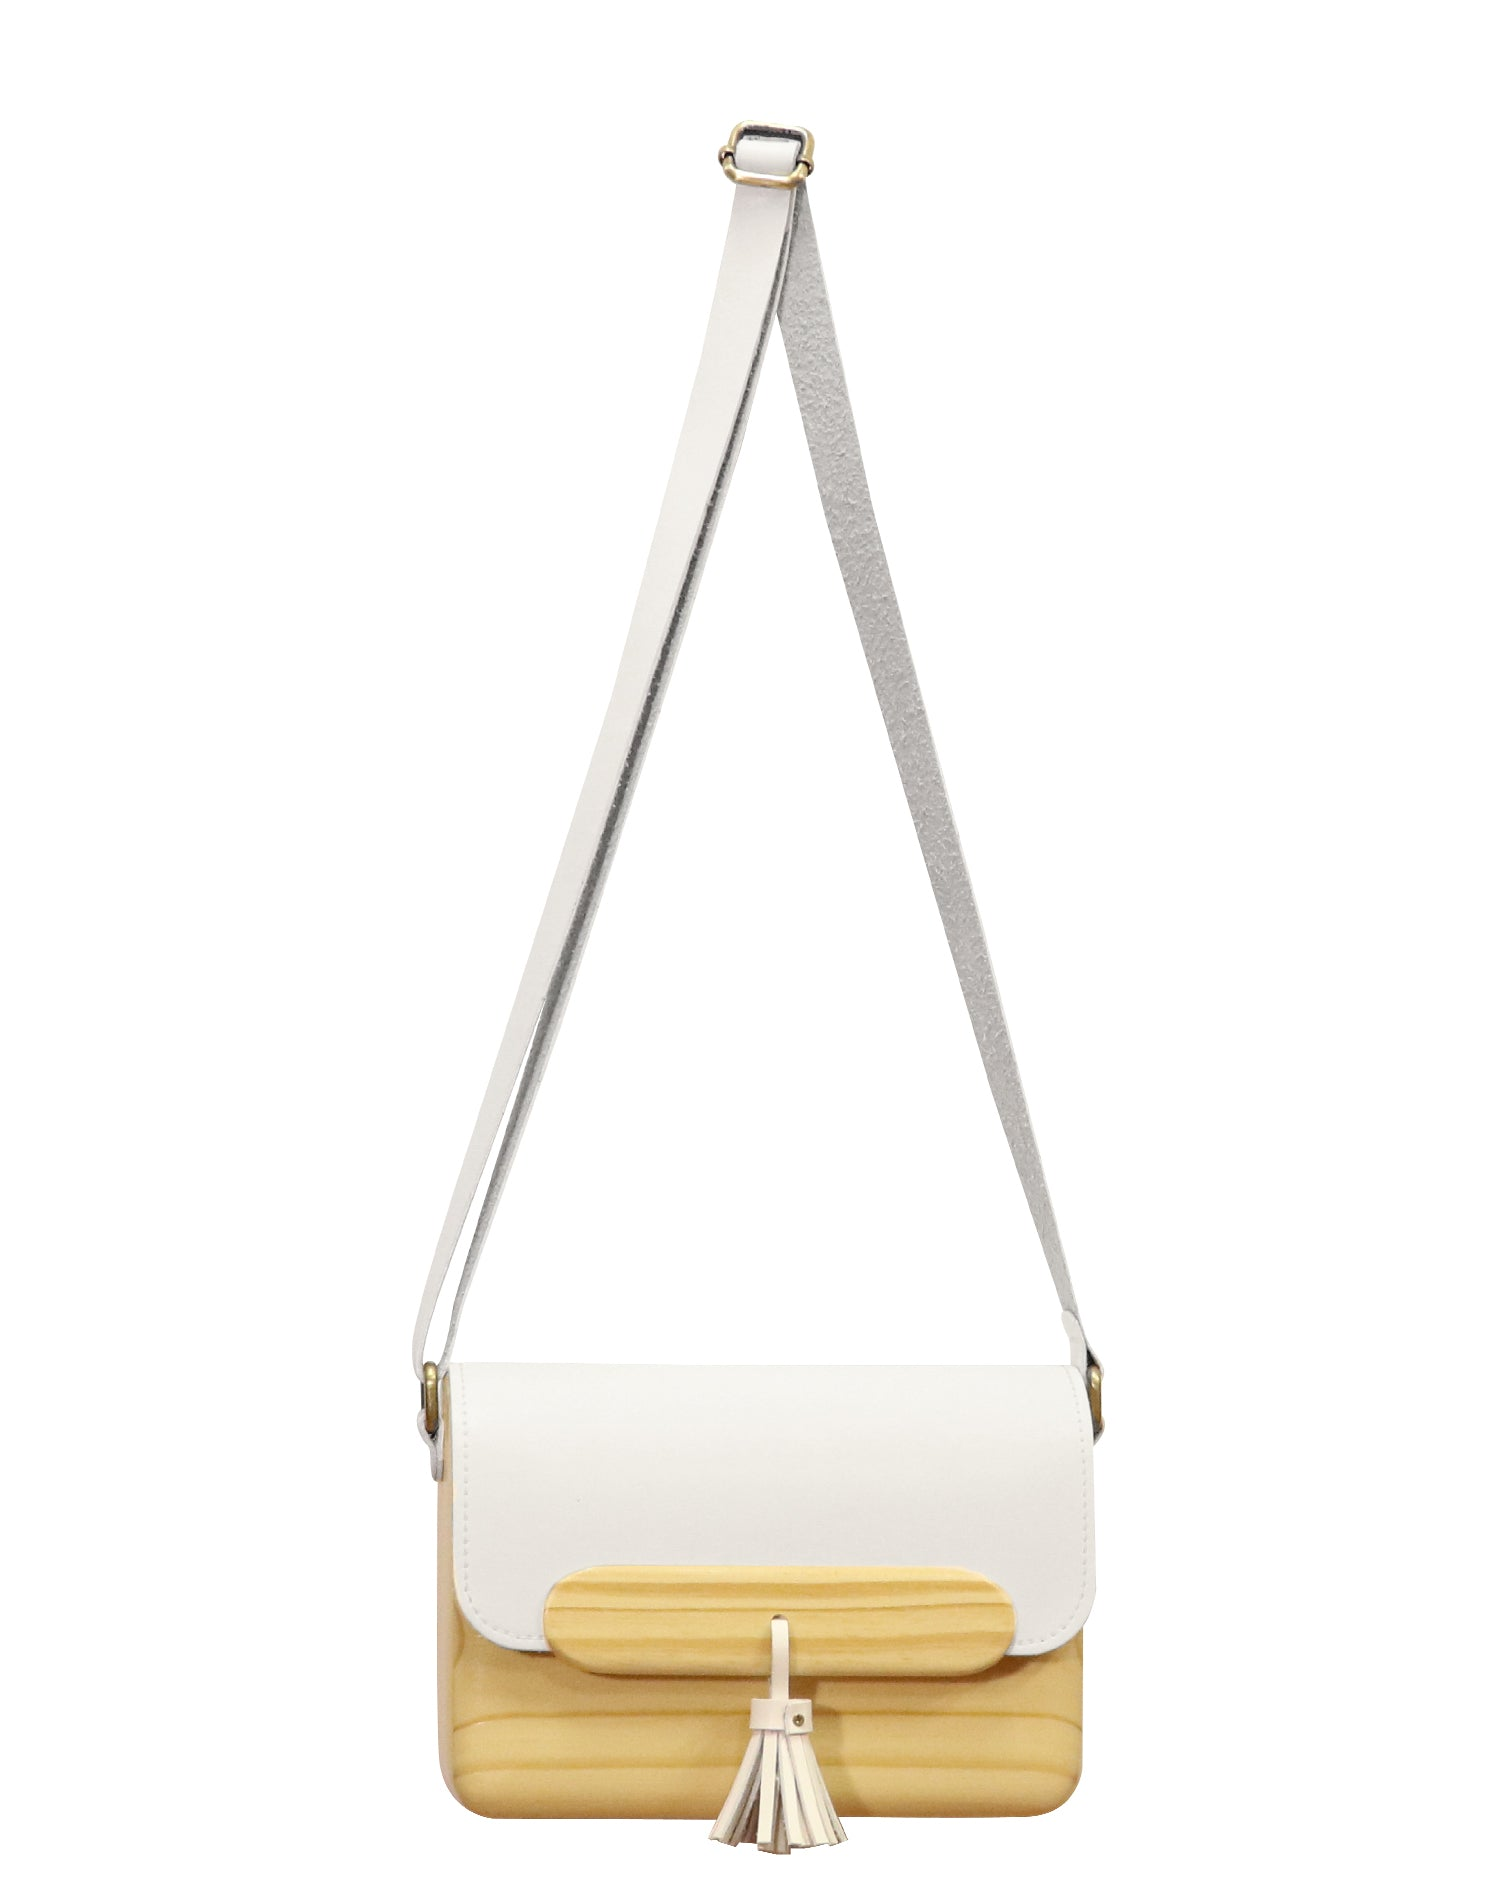 TS Shoulder Bag